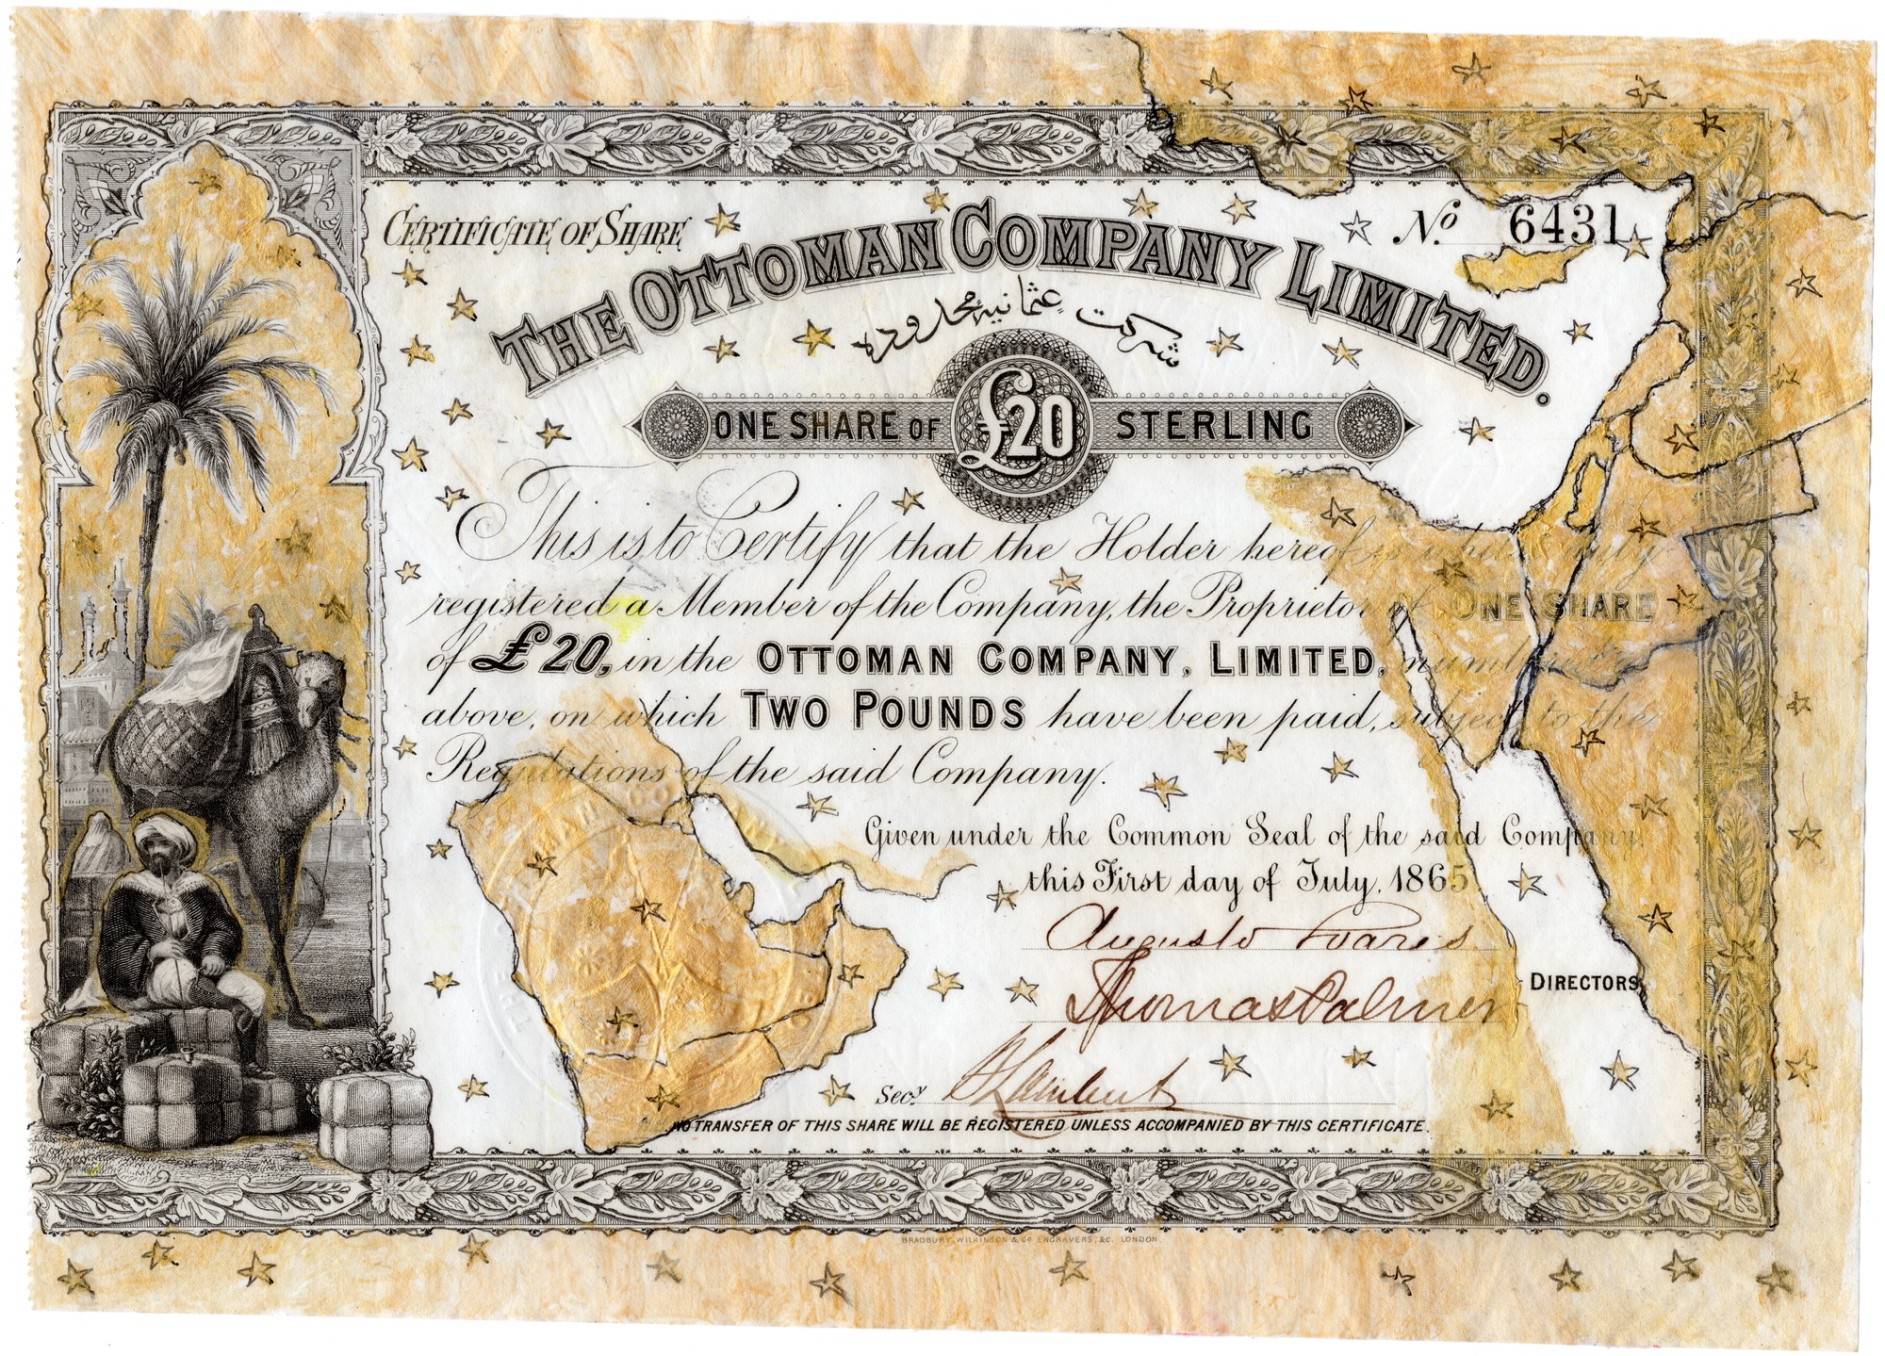 Hew Locke, The Ottoman Company Limited, 2014, Acrylic on antique paper share certificate, 18.4 x 26 cm, 7 1/4 x 10 1/4 in, Framed: 26 x 33.7 x 4.2 cm, 10 1/4 x 13 1/4 x 1 5/8 in